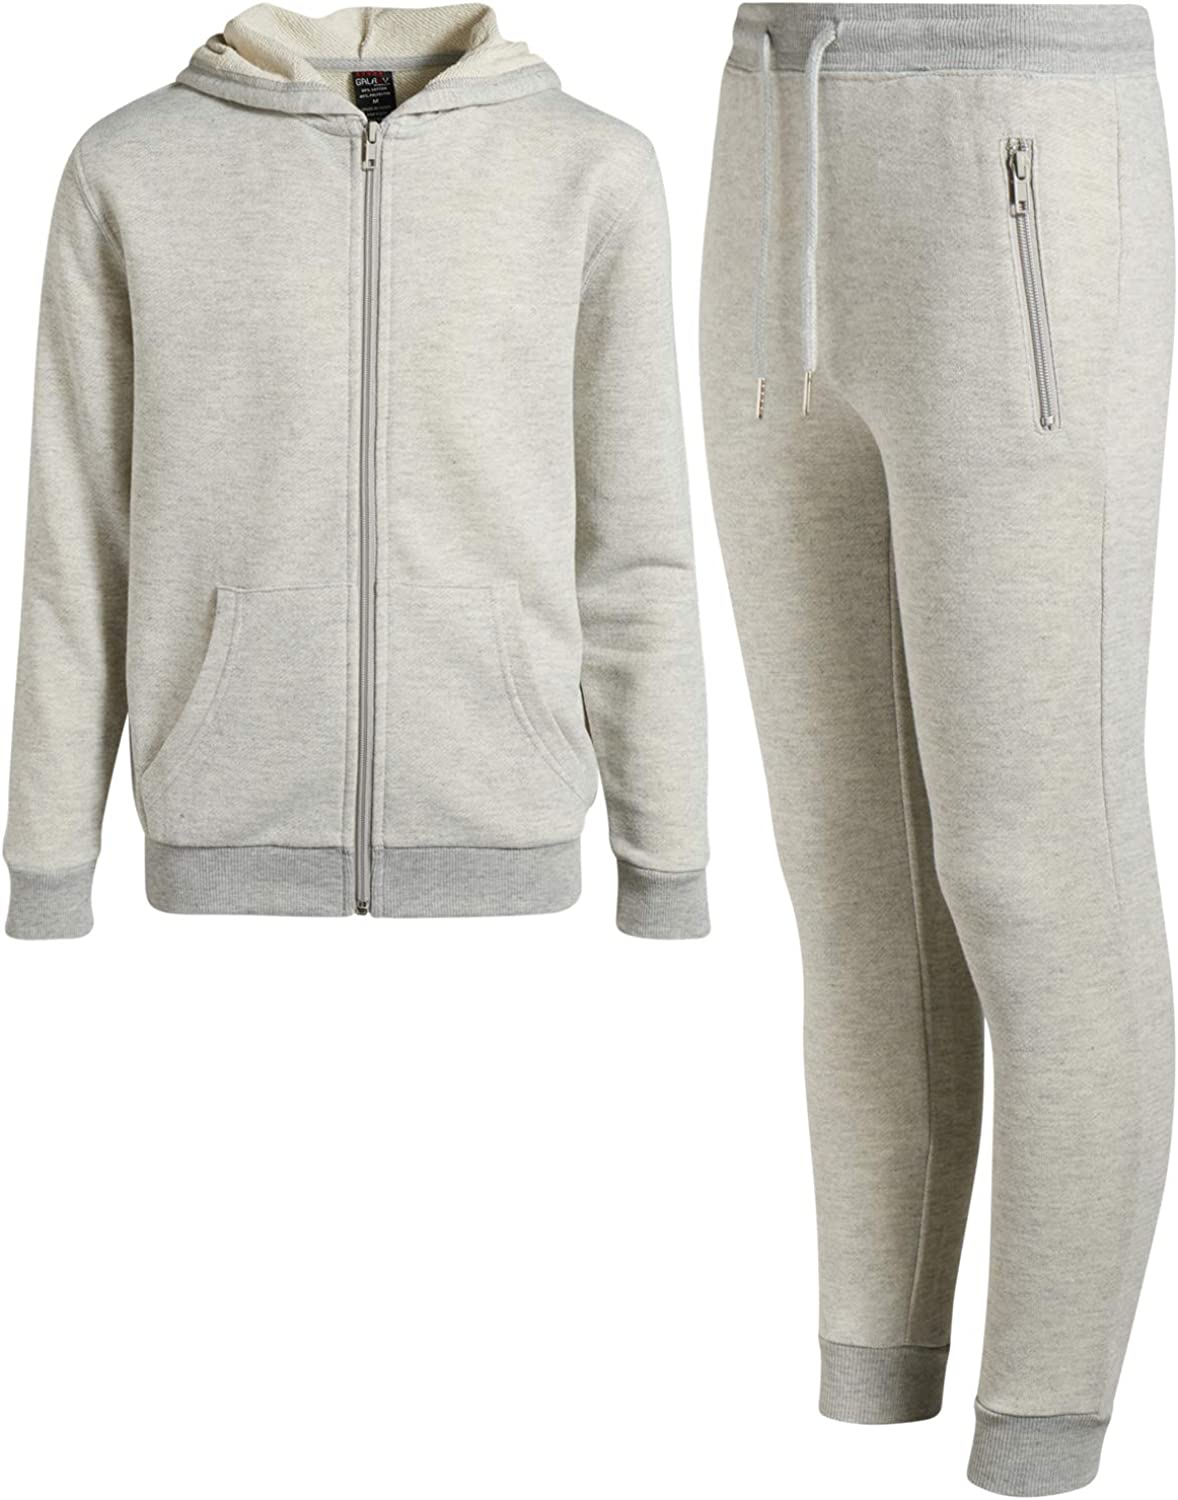 Galaxy by Harvic Boys 2-Piece Active French Terry Hoodie and Jogger Set